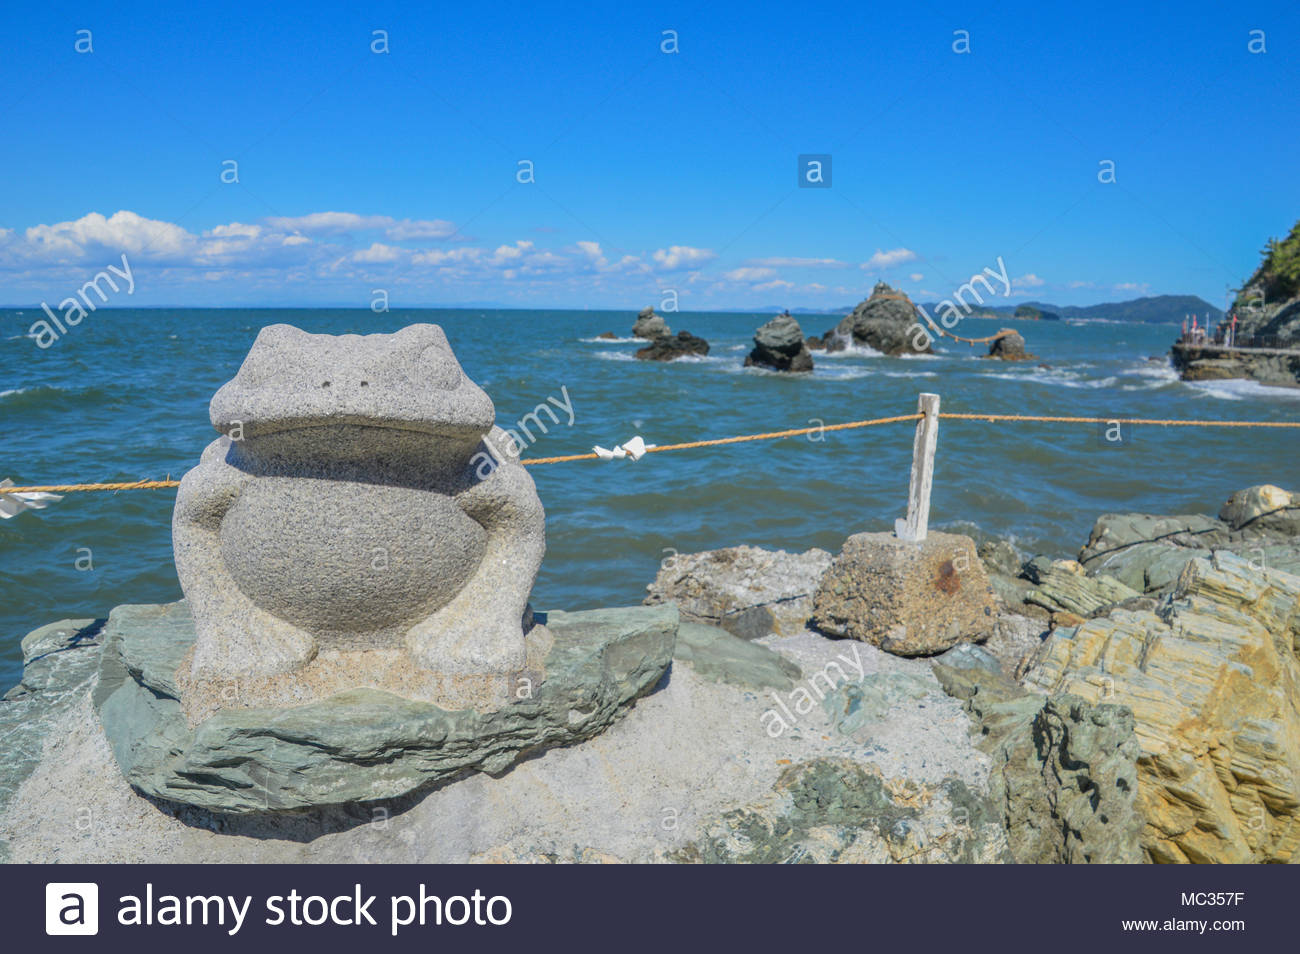 Frog Statue In Front Of Meoto Iwa (Wedded Rocks) Japan - Stock Image